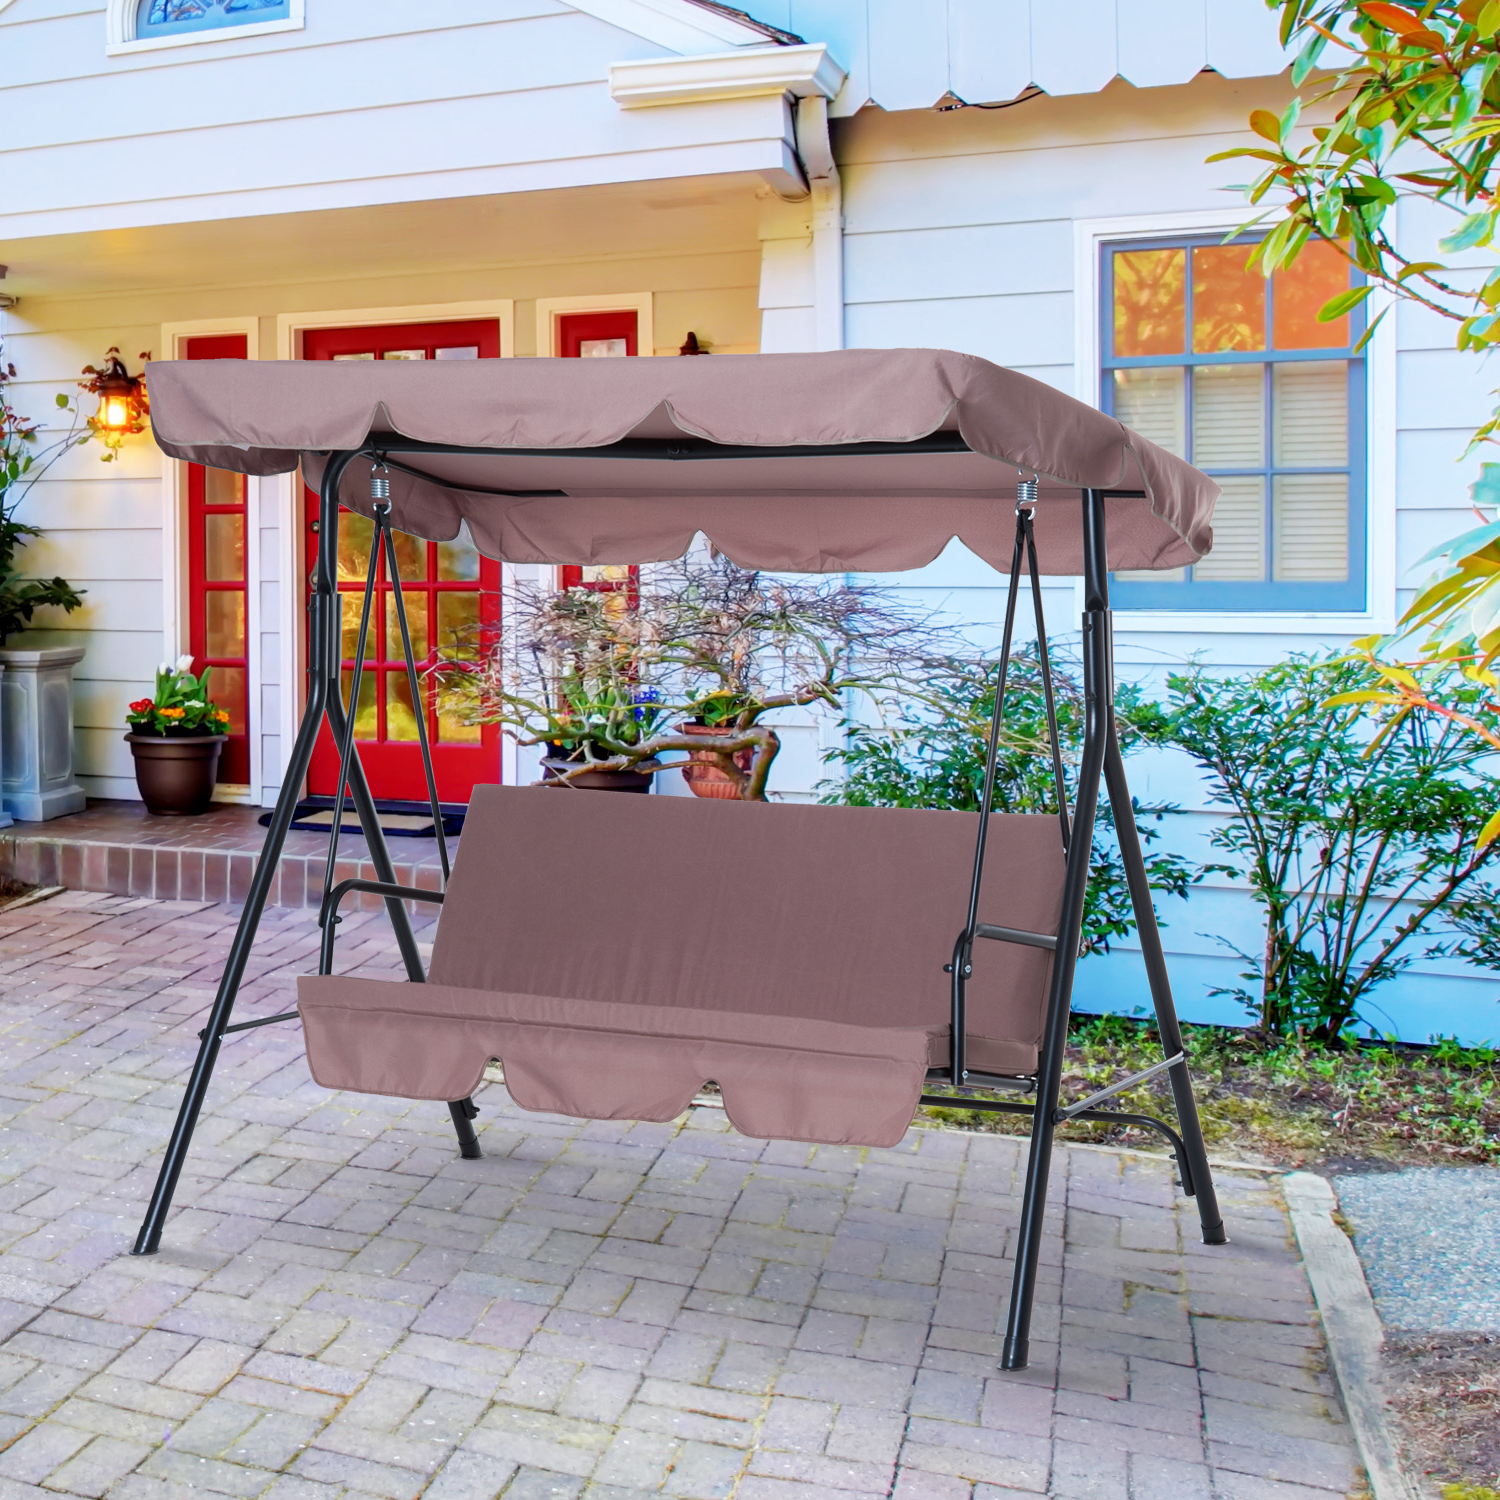 Fashionable Cad $149.99 Outsunny Meatal 3 Seater Outdoor Patio Swing Pertaining To 3 Seats Patio Canopy Swing Gliders Hammock Cushioned Steel Frame (Gallery 11 of 30)